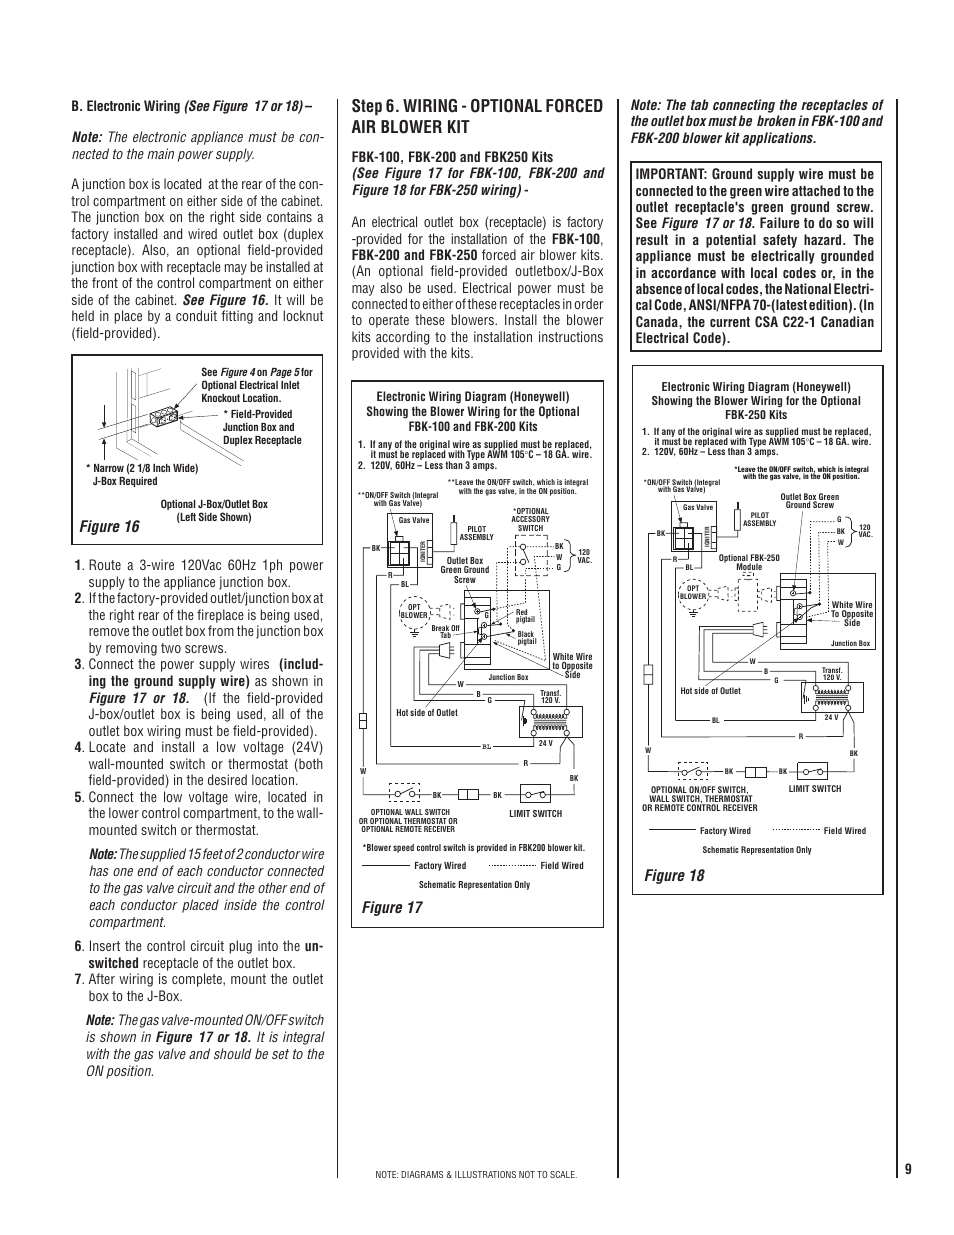 Maxon Burner Control Wire Diagram Trusted Wiring Diagrams Panel Heater Gas Valve Explained Combustion Equipment